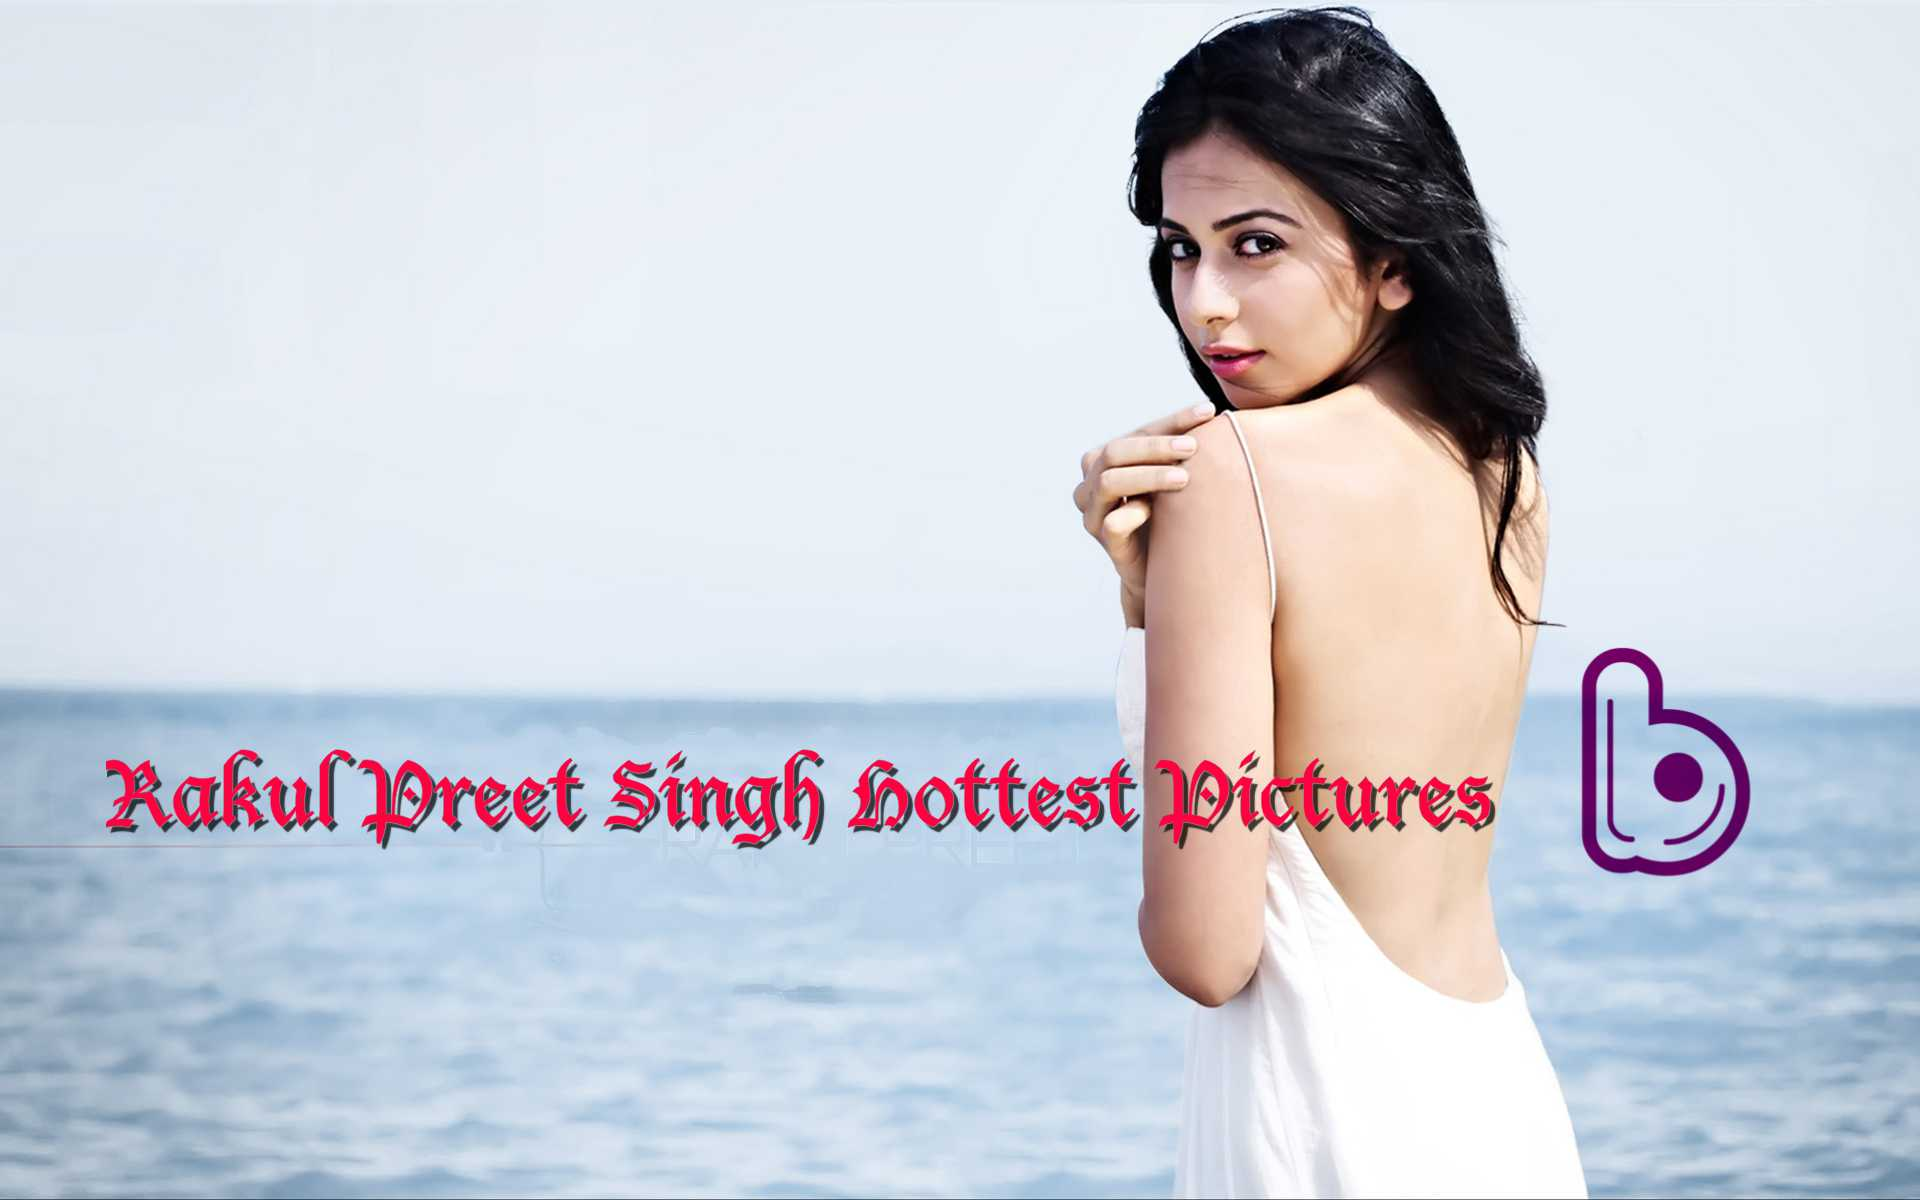 Rakul Preet Singh Hottest Pictures You Can't miss !